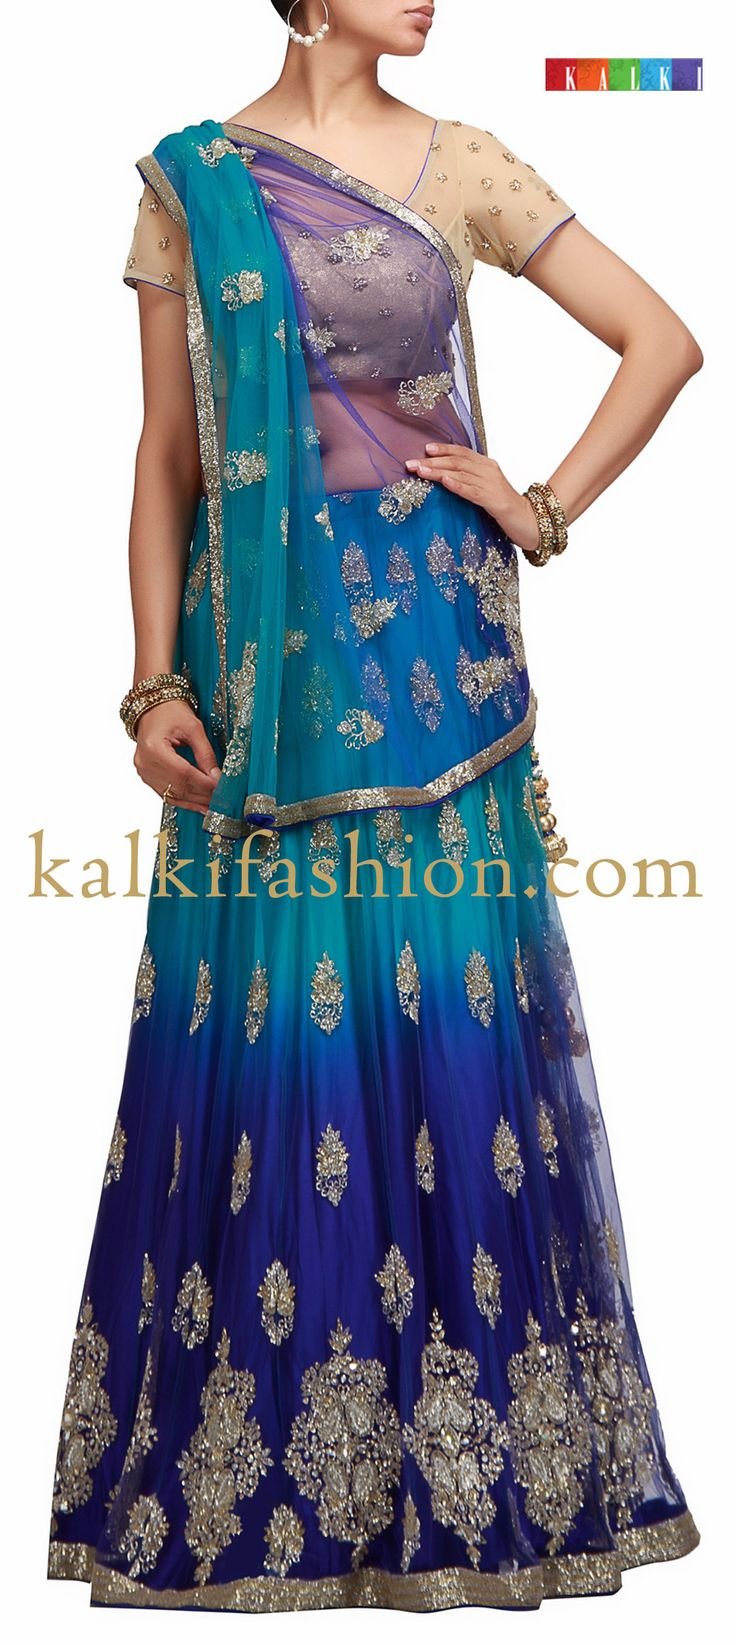 Buy it now http://www.kalkifashion.com/shaded-lehenga-in-blue-and-sea-green-with-kardana-work-hand-made.html Shaded lehenga in blue and sea green with Kardana work -Hand Made